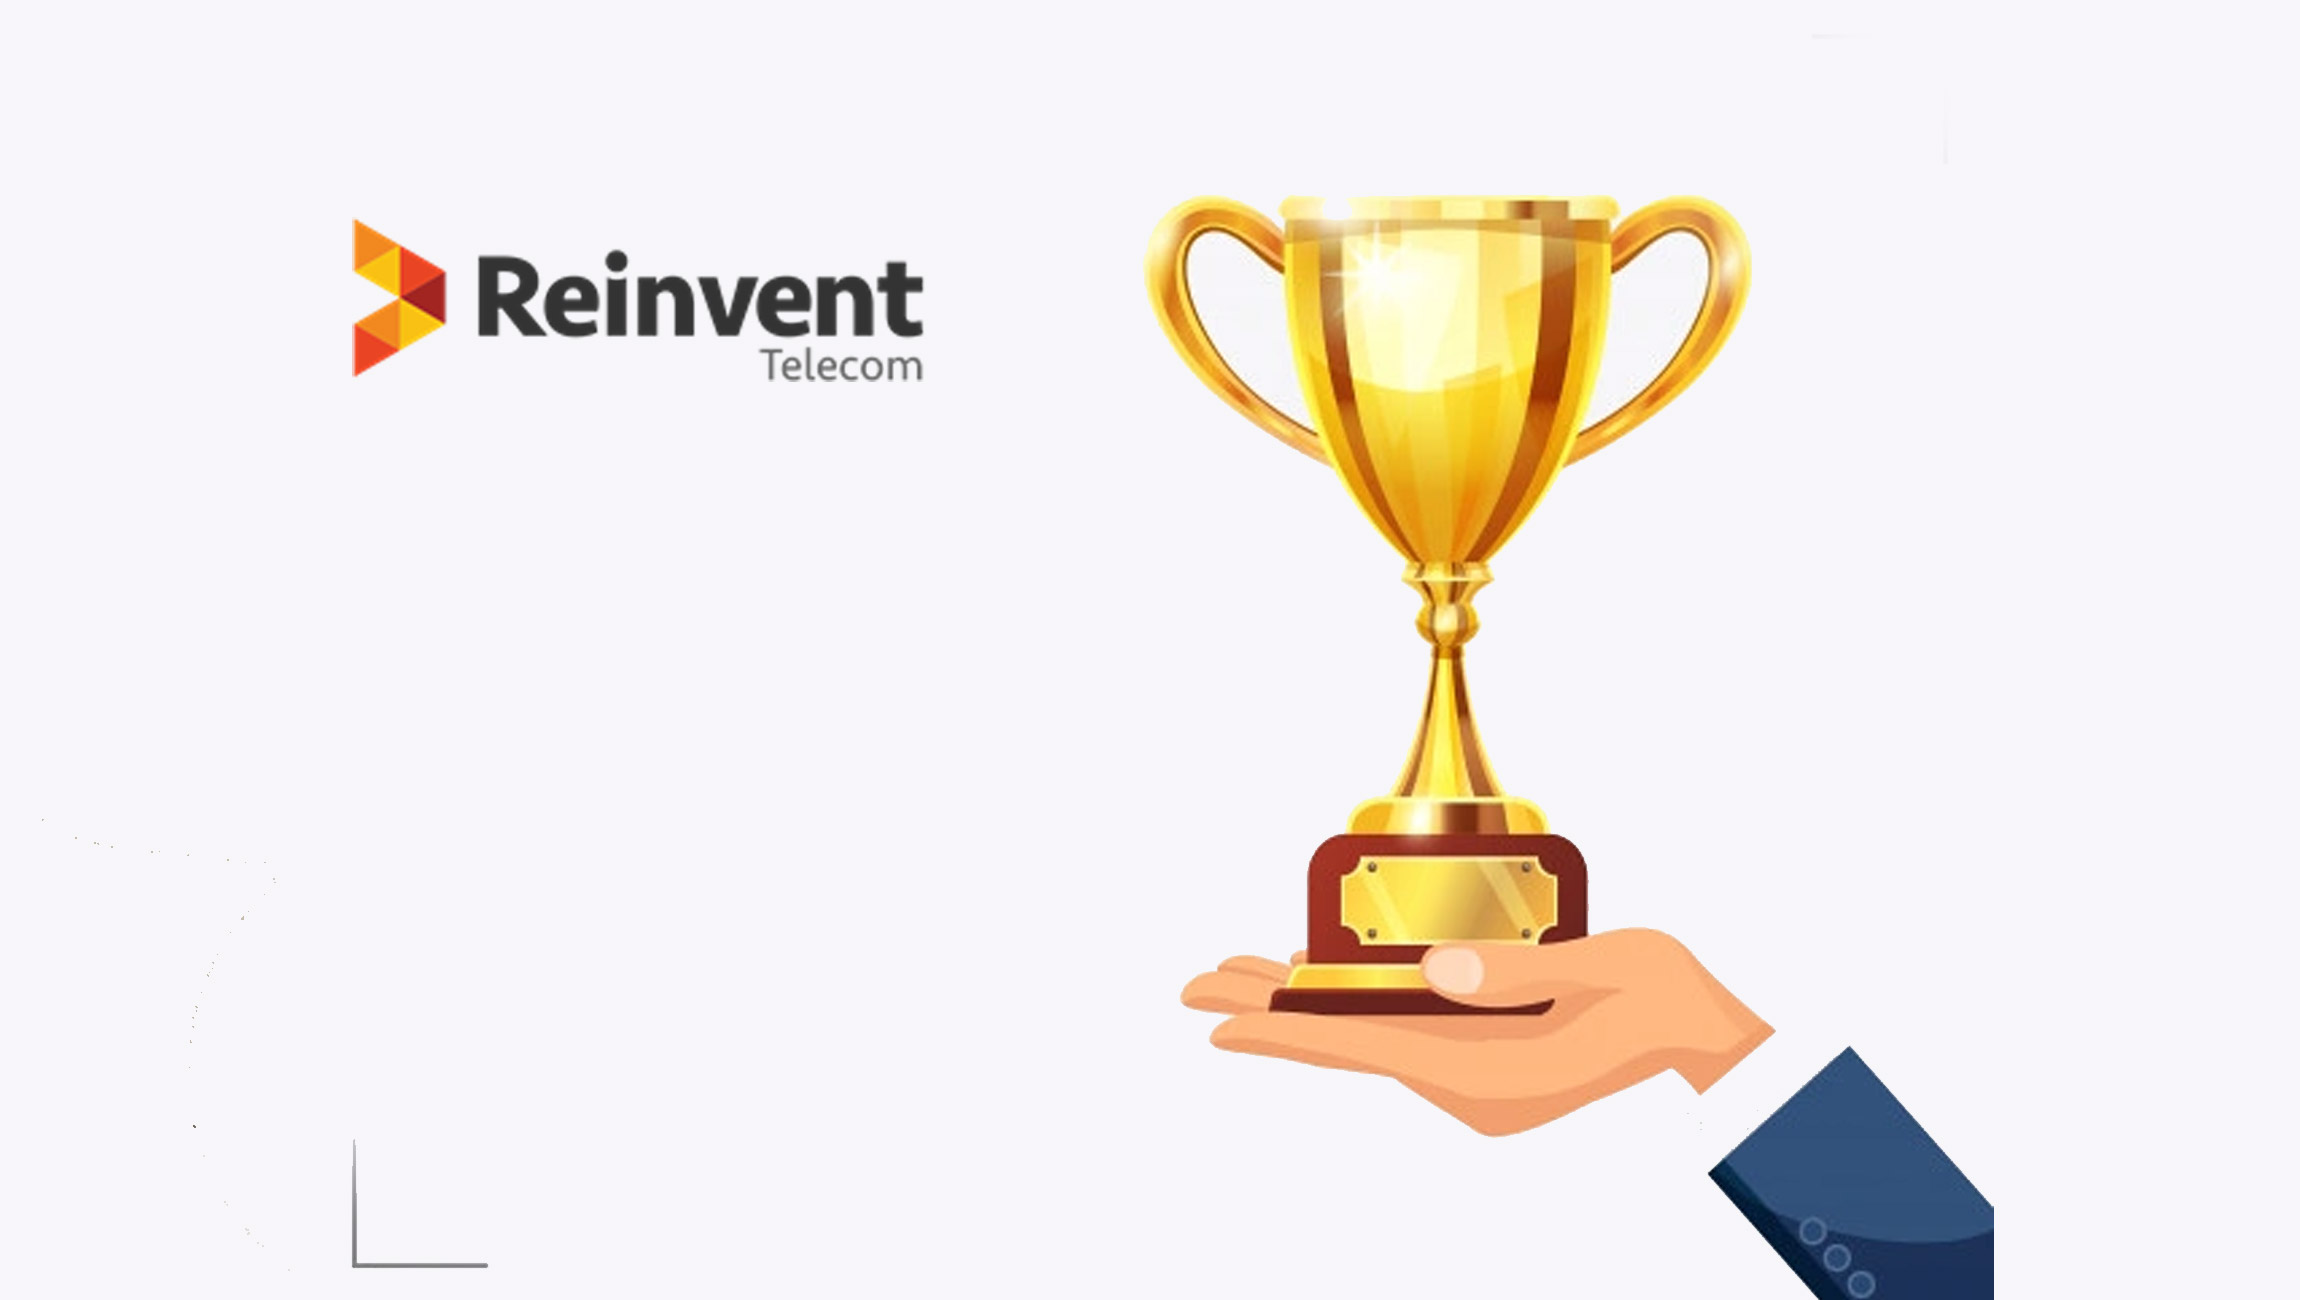 Reinvent Telecom Named a Winner of the 2020 INTERNET TELEPHONY Friend of the Channel Award